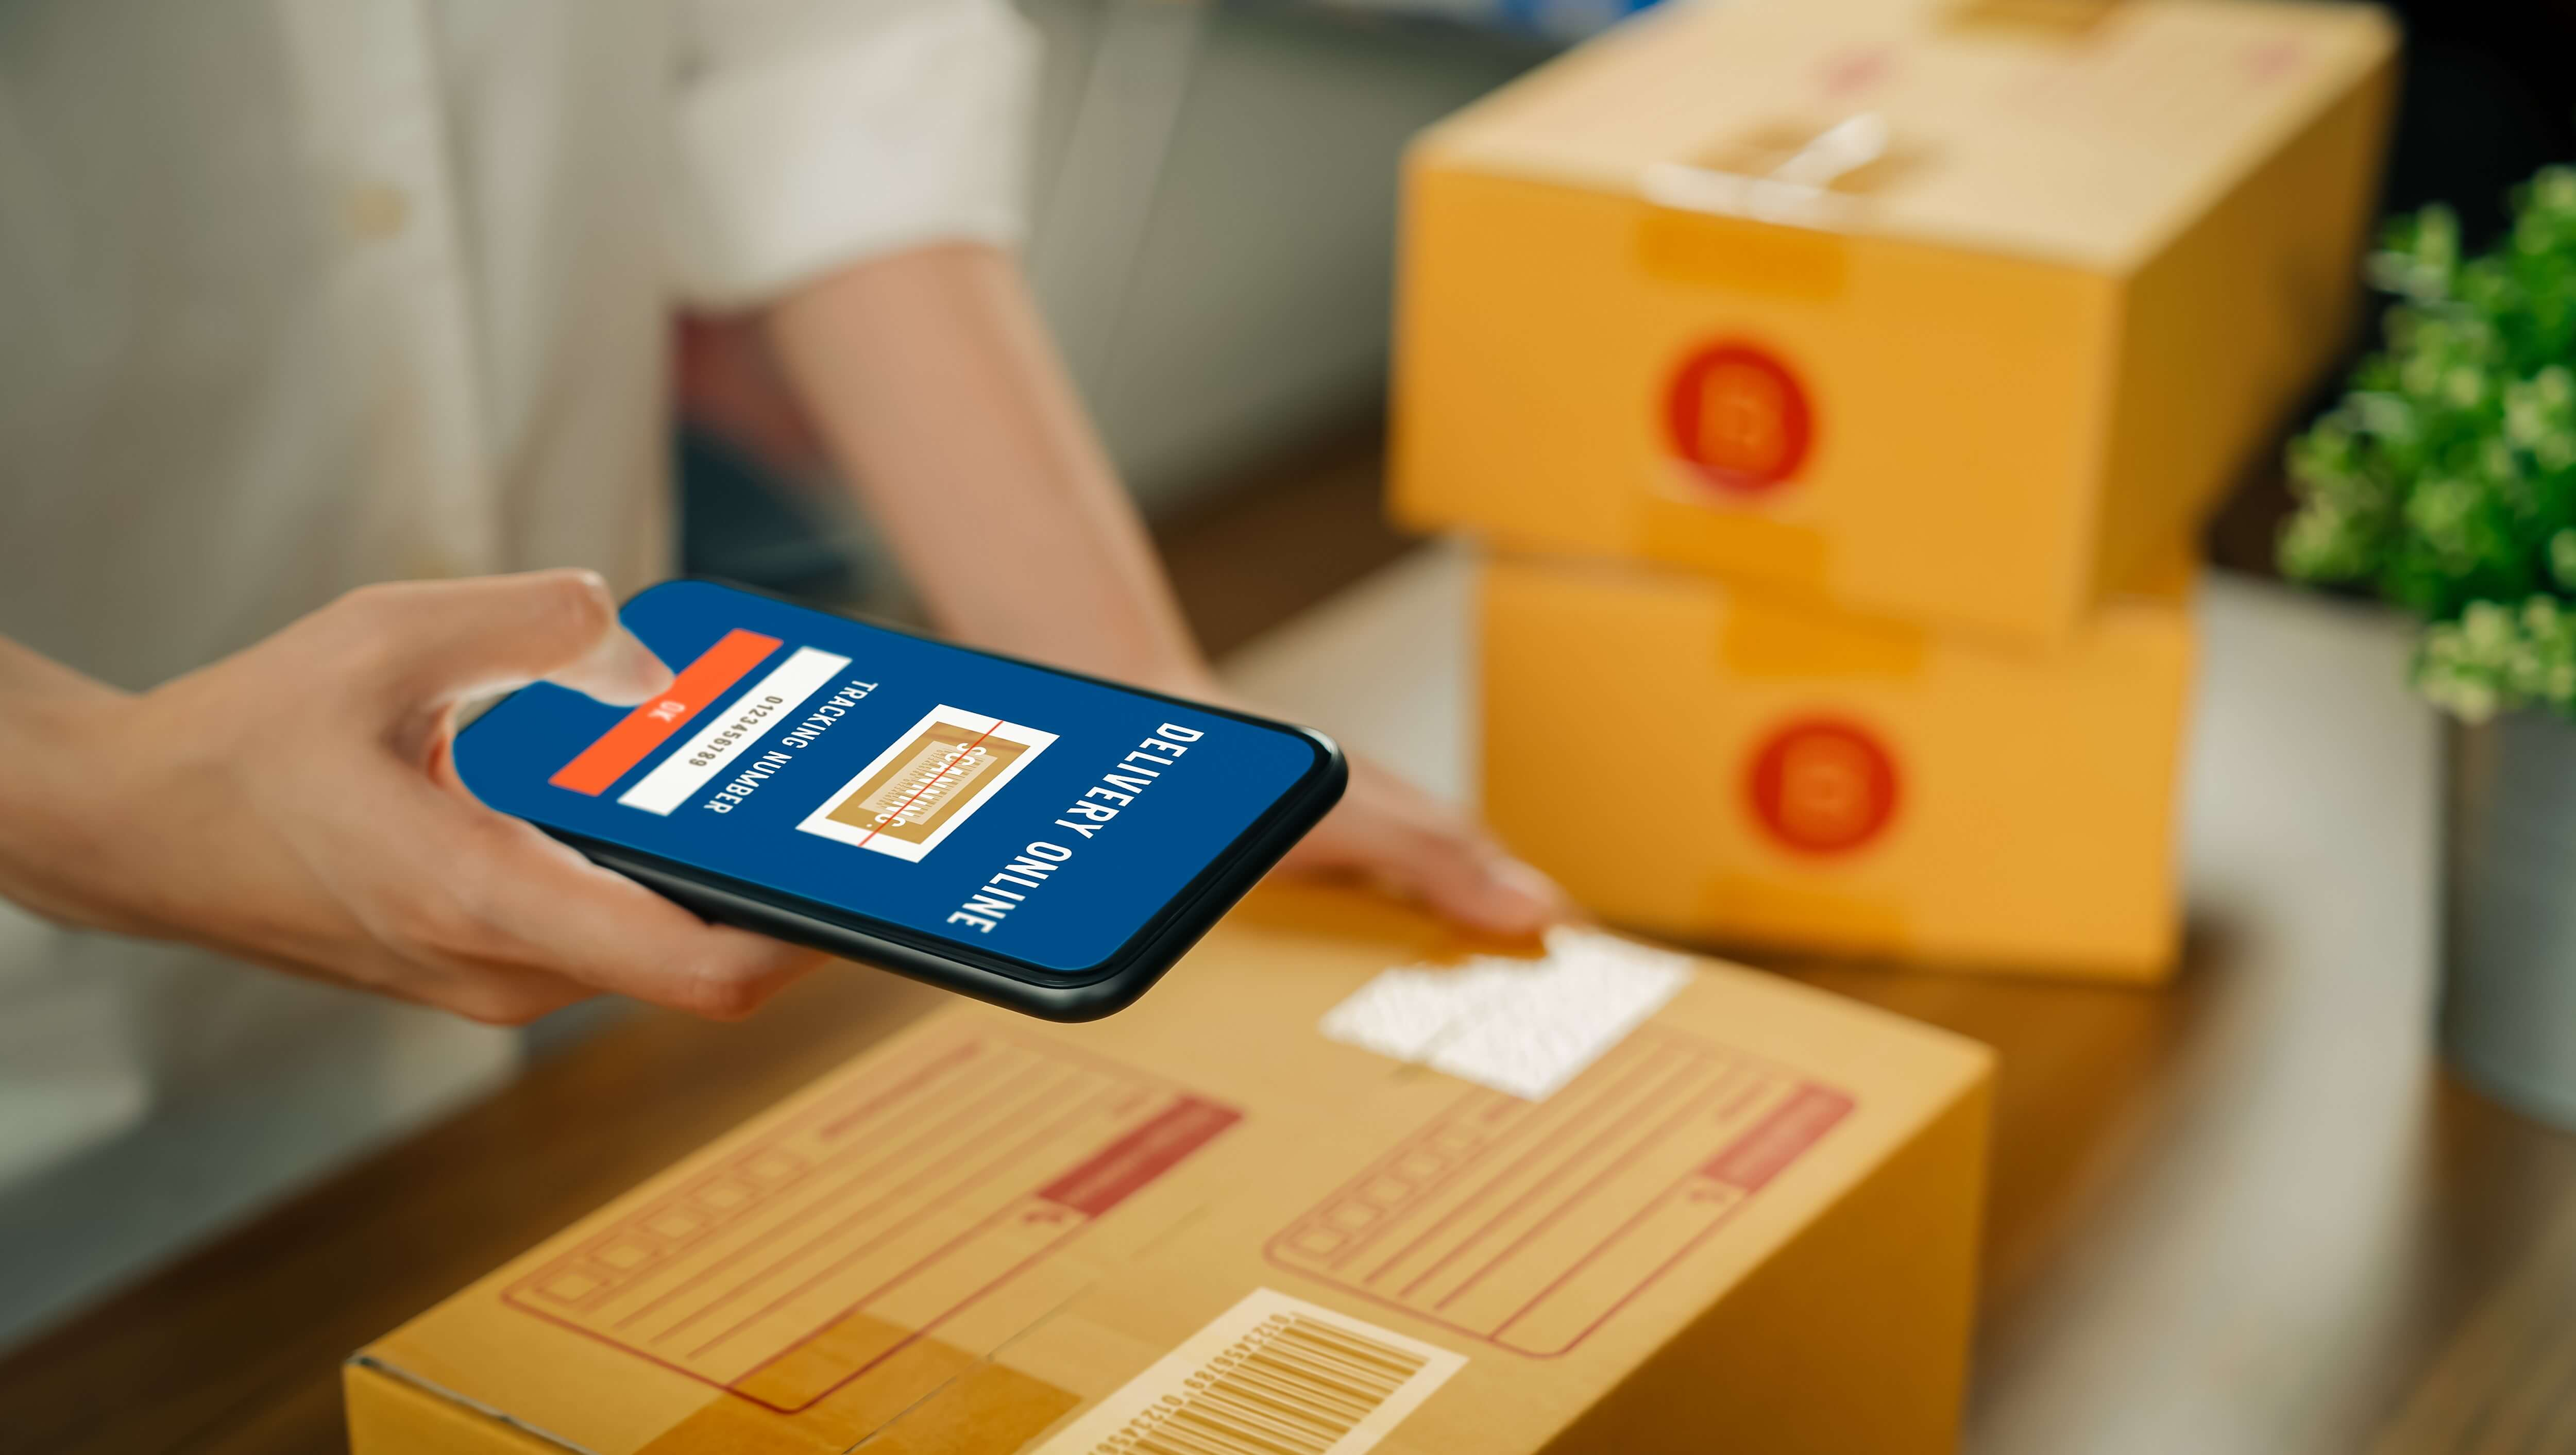 AliExpress Direct gets your orders delivered within a week<div><span style='color:#a0a0a0;font-size:16px;text-transform:none;line-height:1.1'>Get access to free shipping and assured delivery services.</span></div>